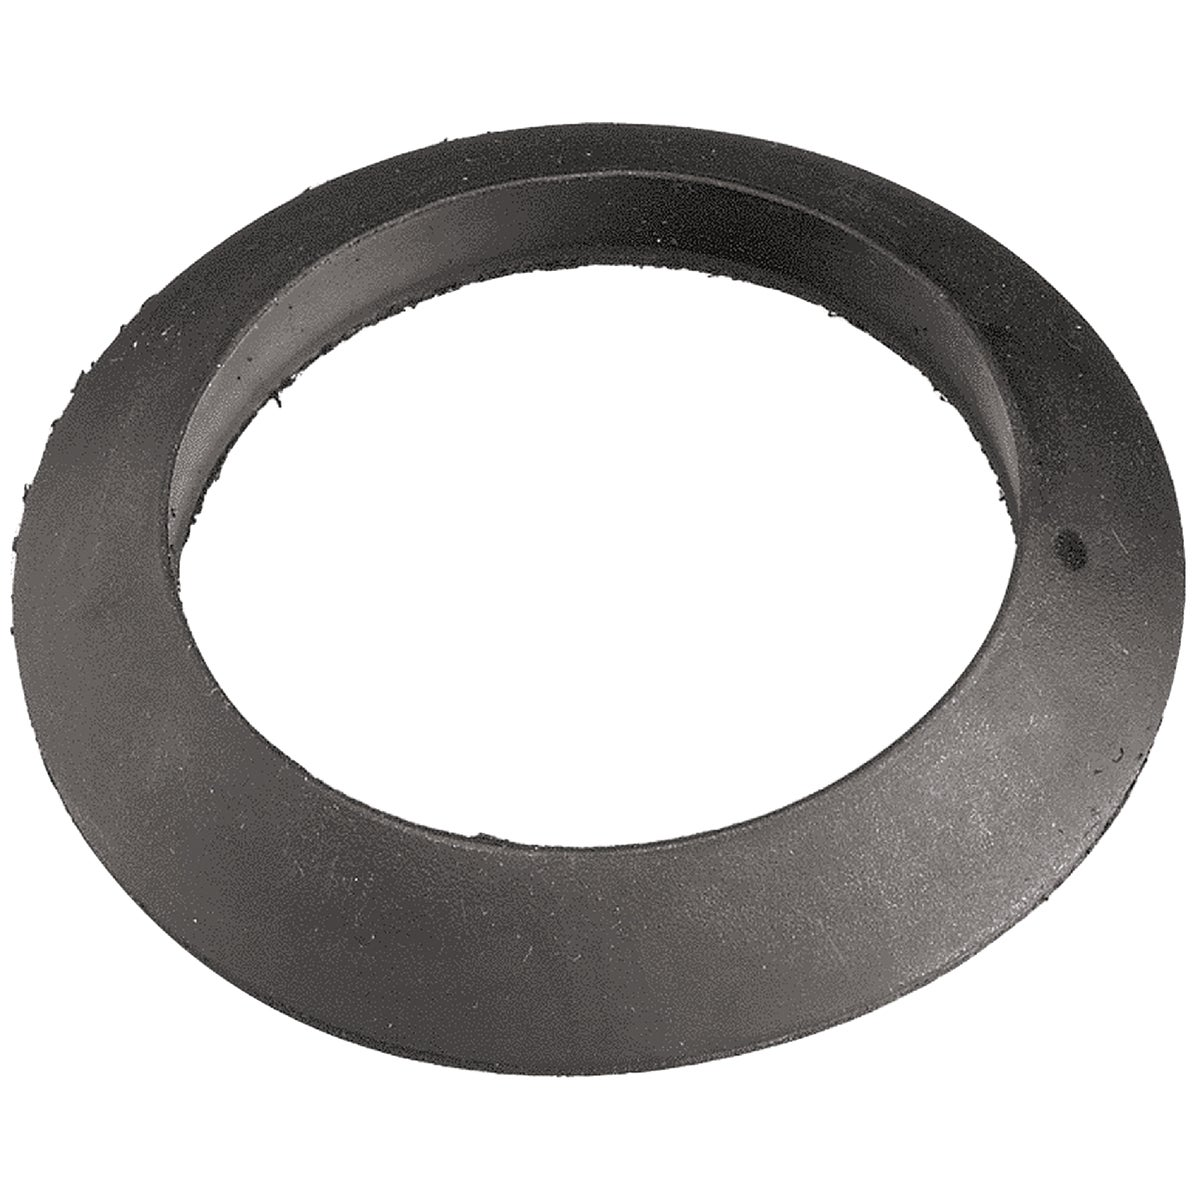 FLUSH VALVE WASHER - 414536 by Plumb Pak/keeney Mfg